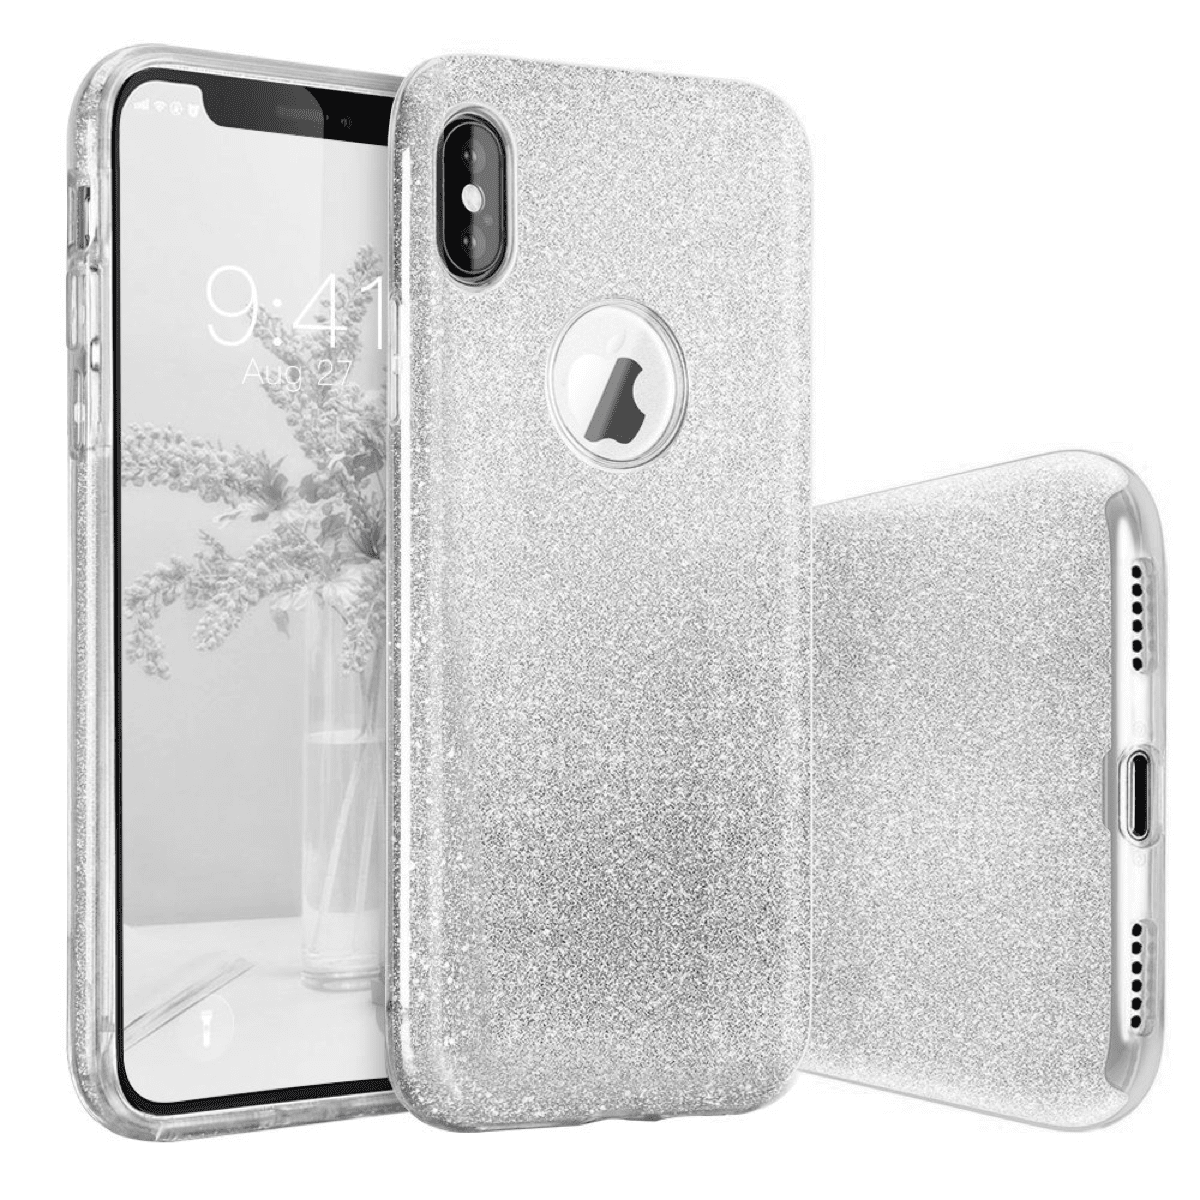 wholesale dealer 67f4d d5abc 5 iPhone X Bling Cases to Glam Up Your Device - The Mac Observer